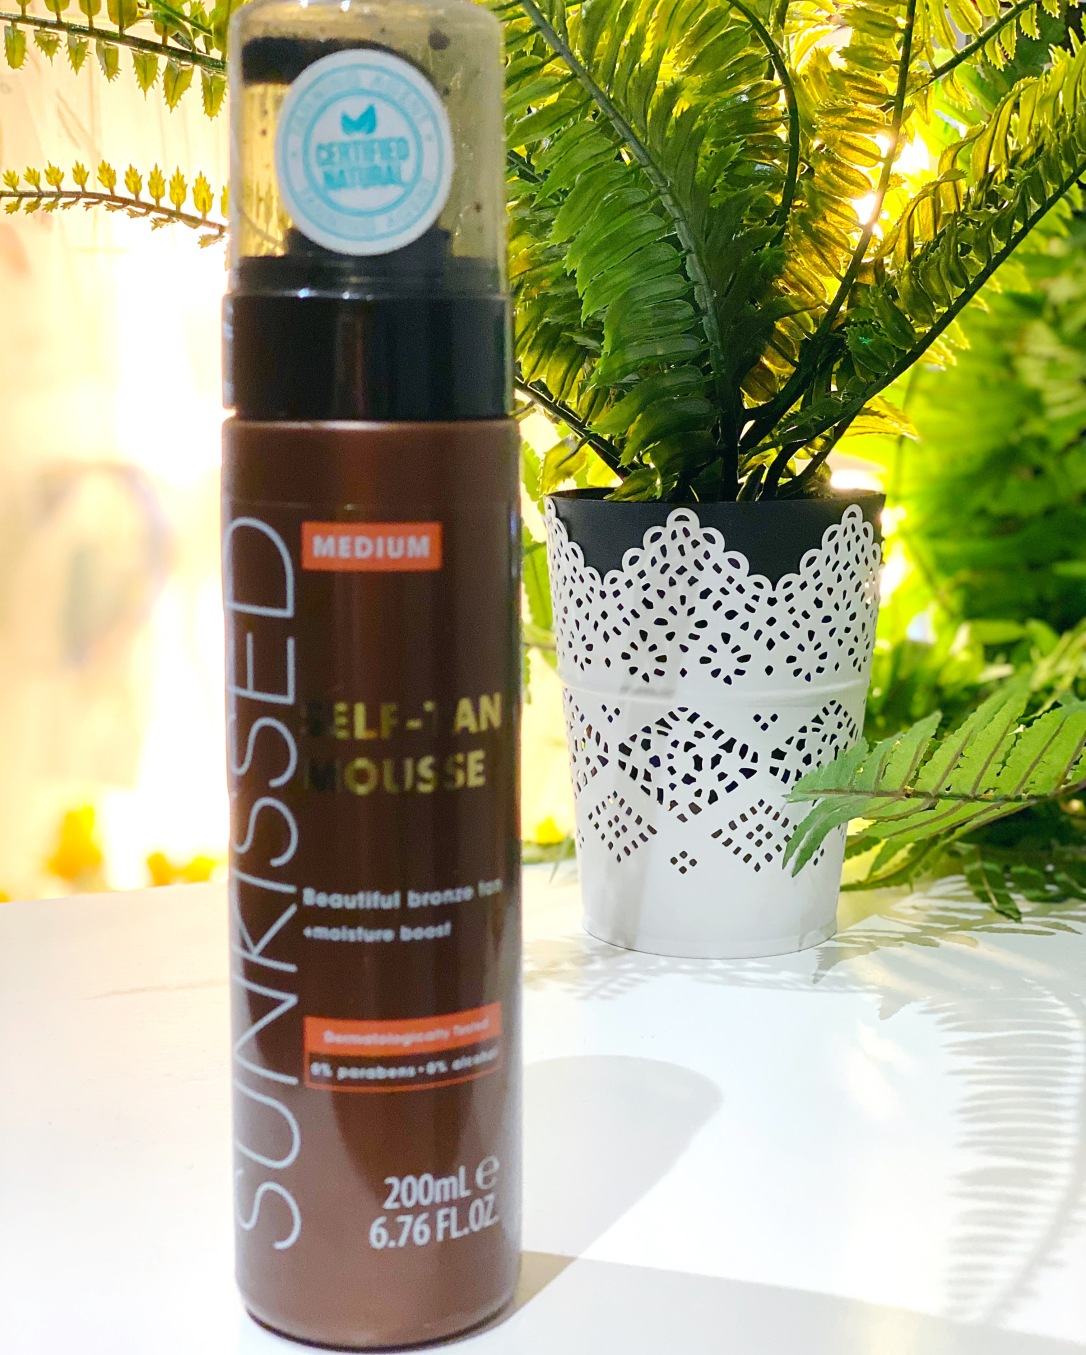 sunkissed ALCHEMY BY AMY UK My Clean/Non Toxic False Tan Collection PARABEN FREE CRUELTY FREE VEGAN ORGANIC FAKE TAN FALSE TAN SELF TAN SUNLESS TANNER